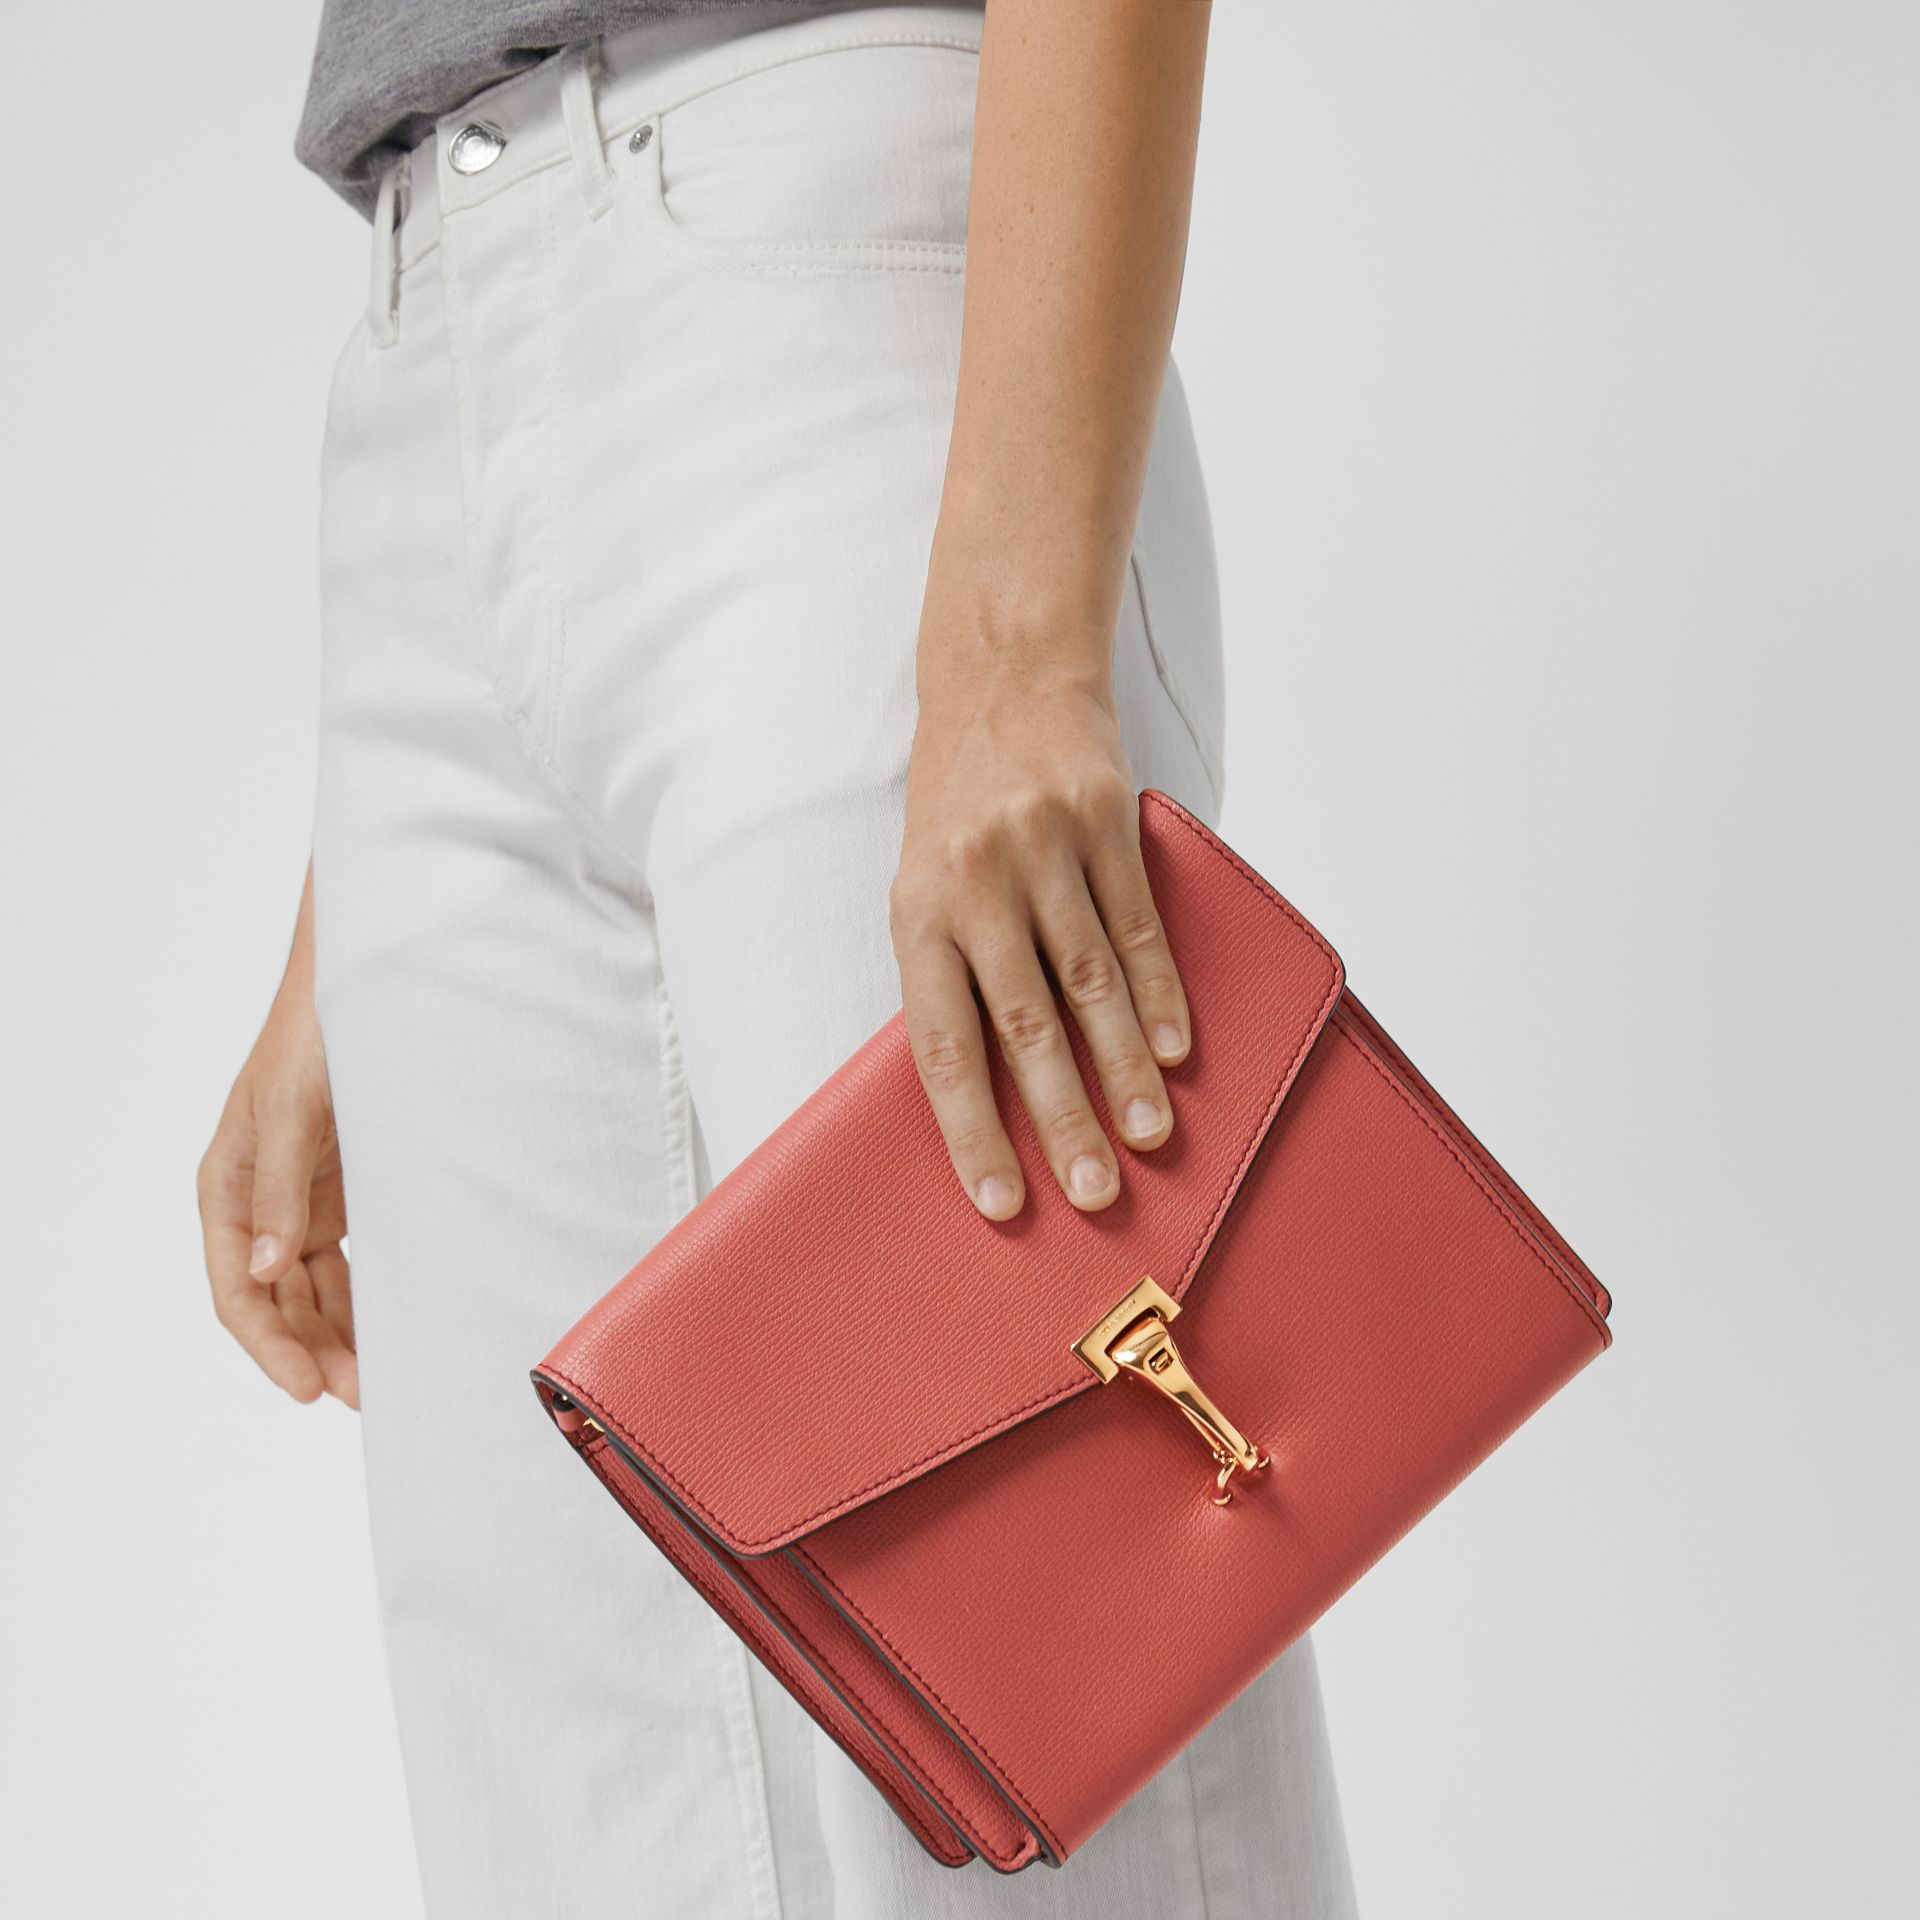 Small Leather Crossbody Bag in Cinnamon Red - Women | Burberry - gallery image 3